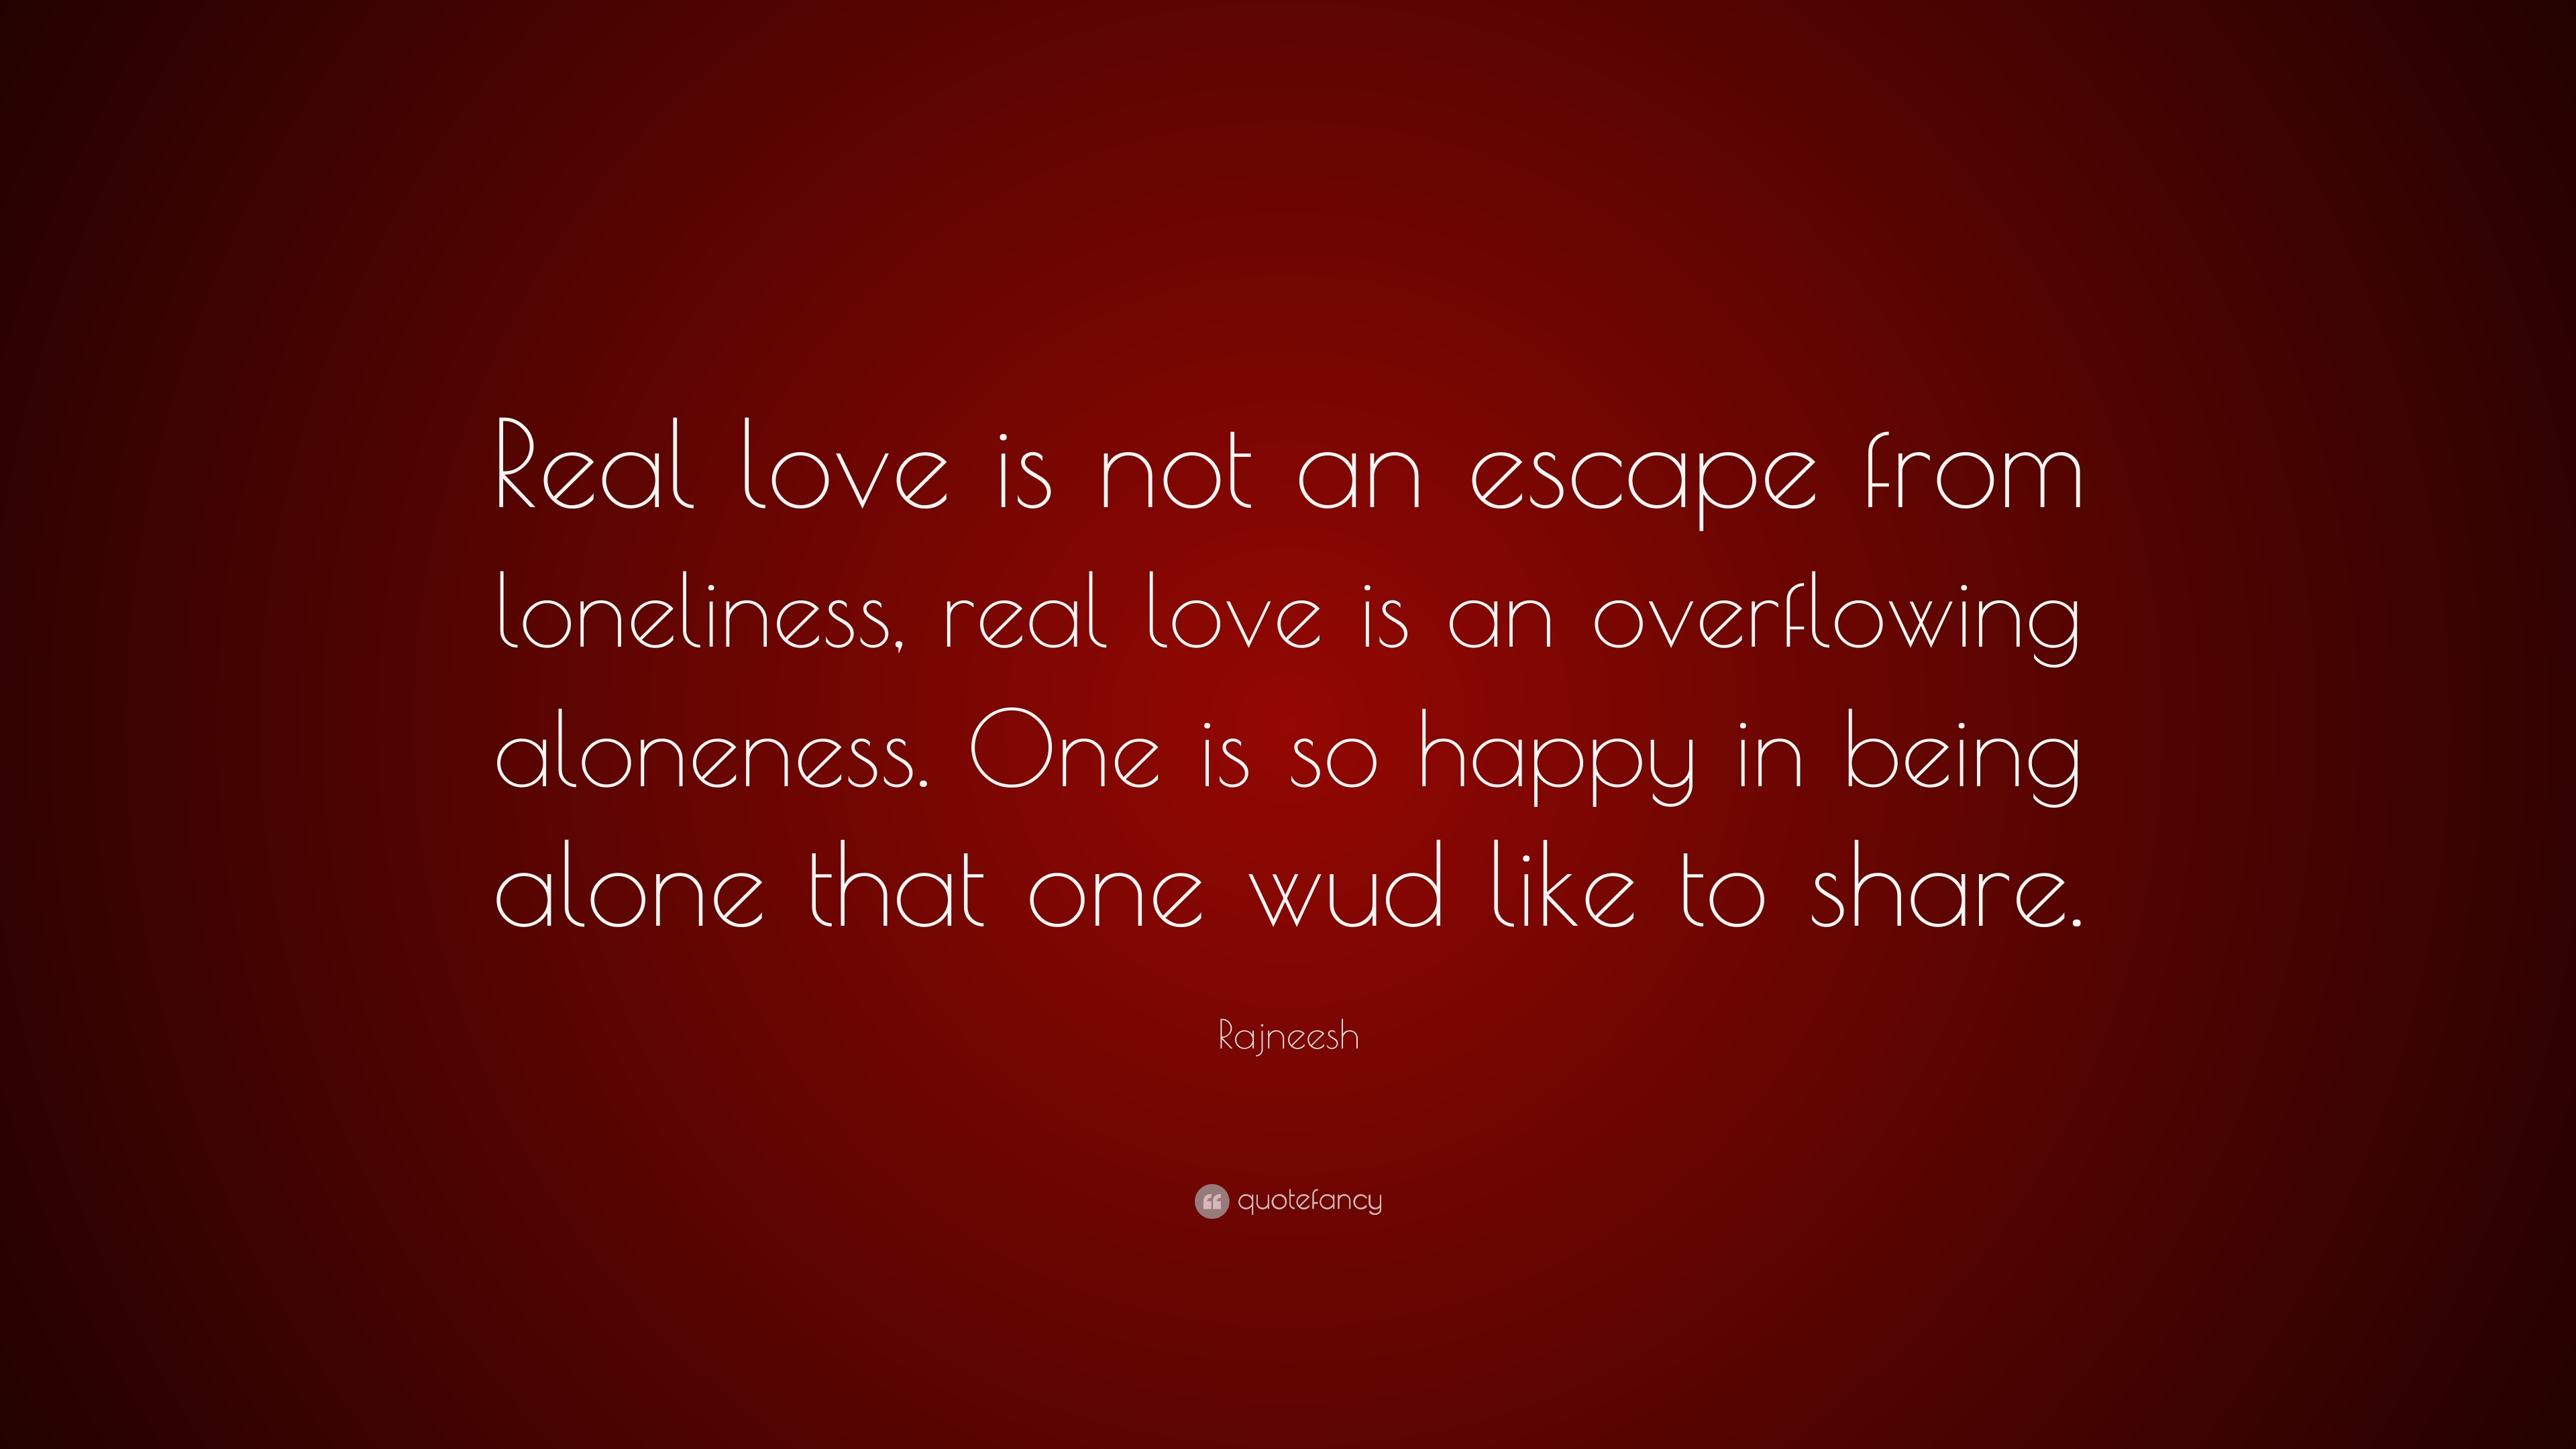 Love is not real